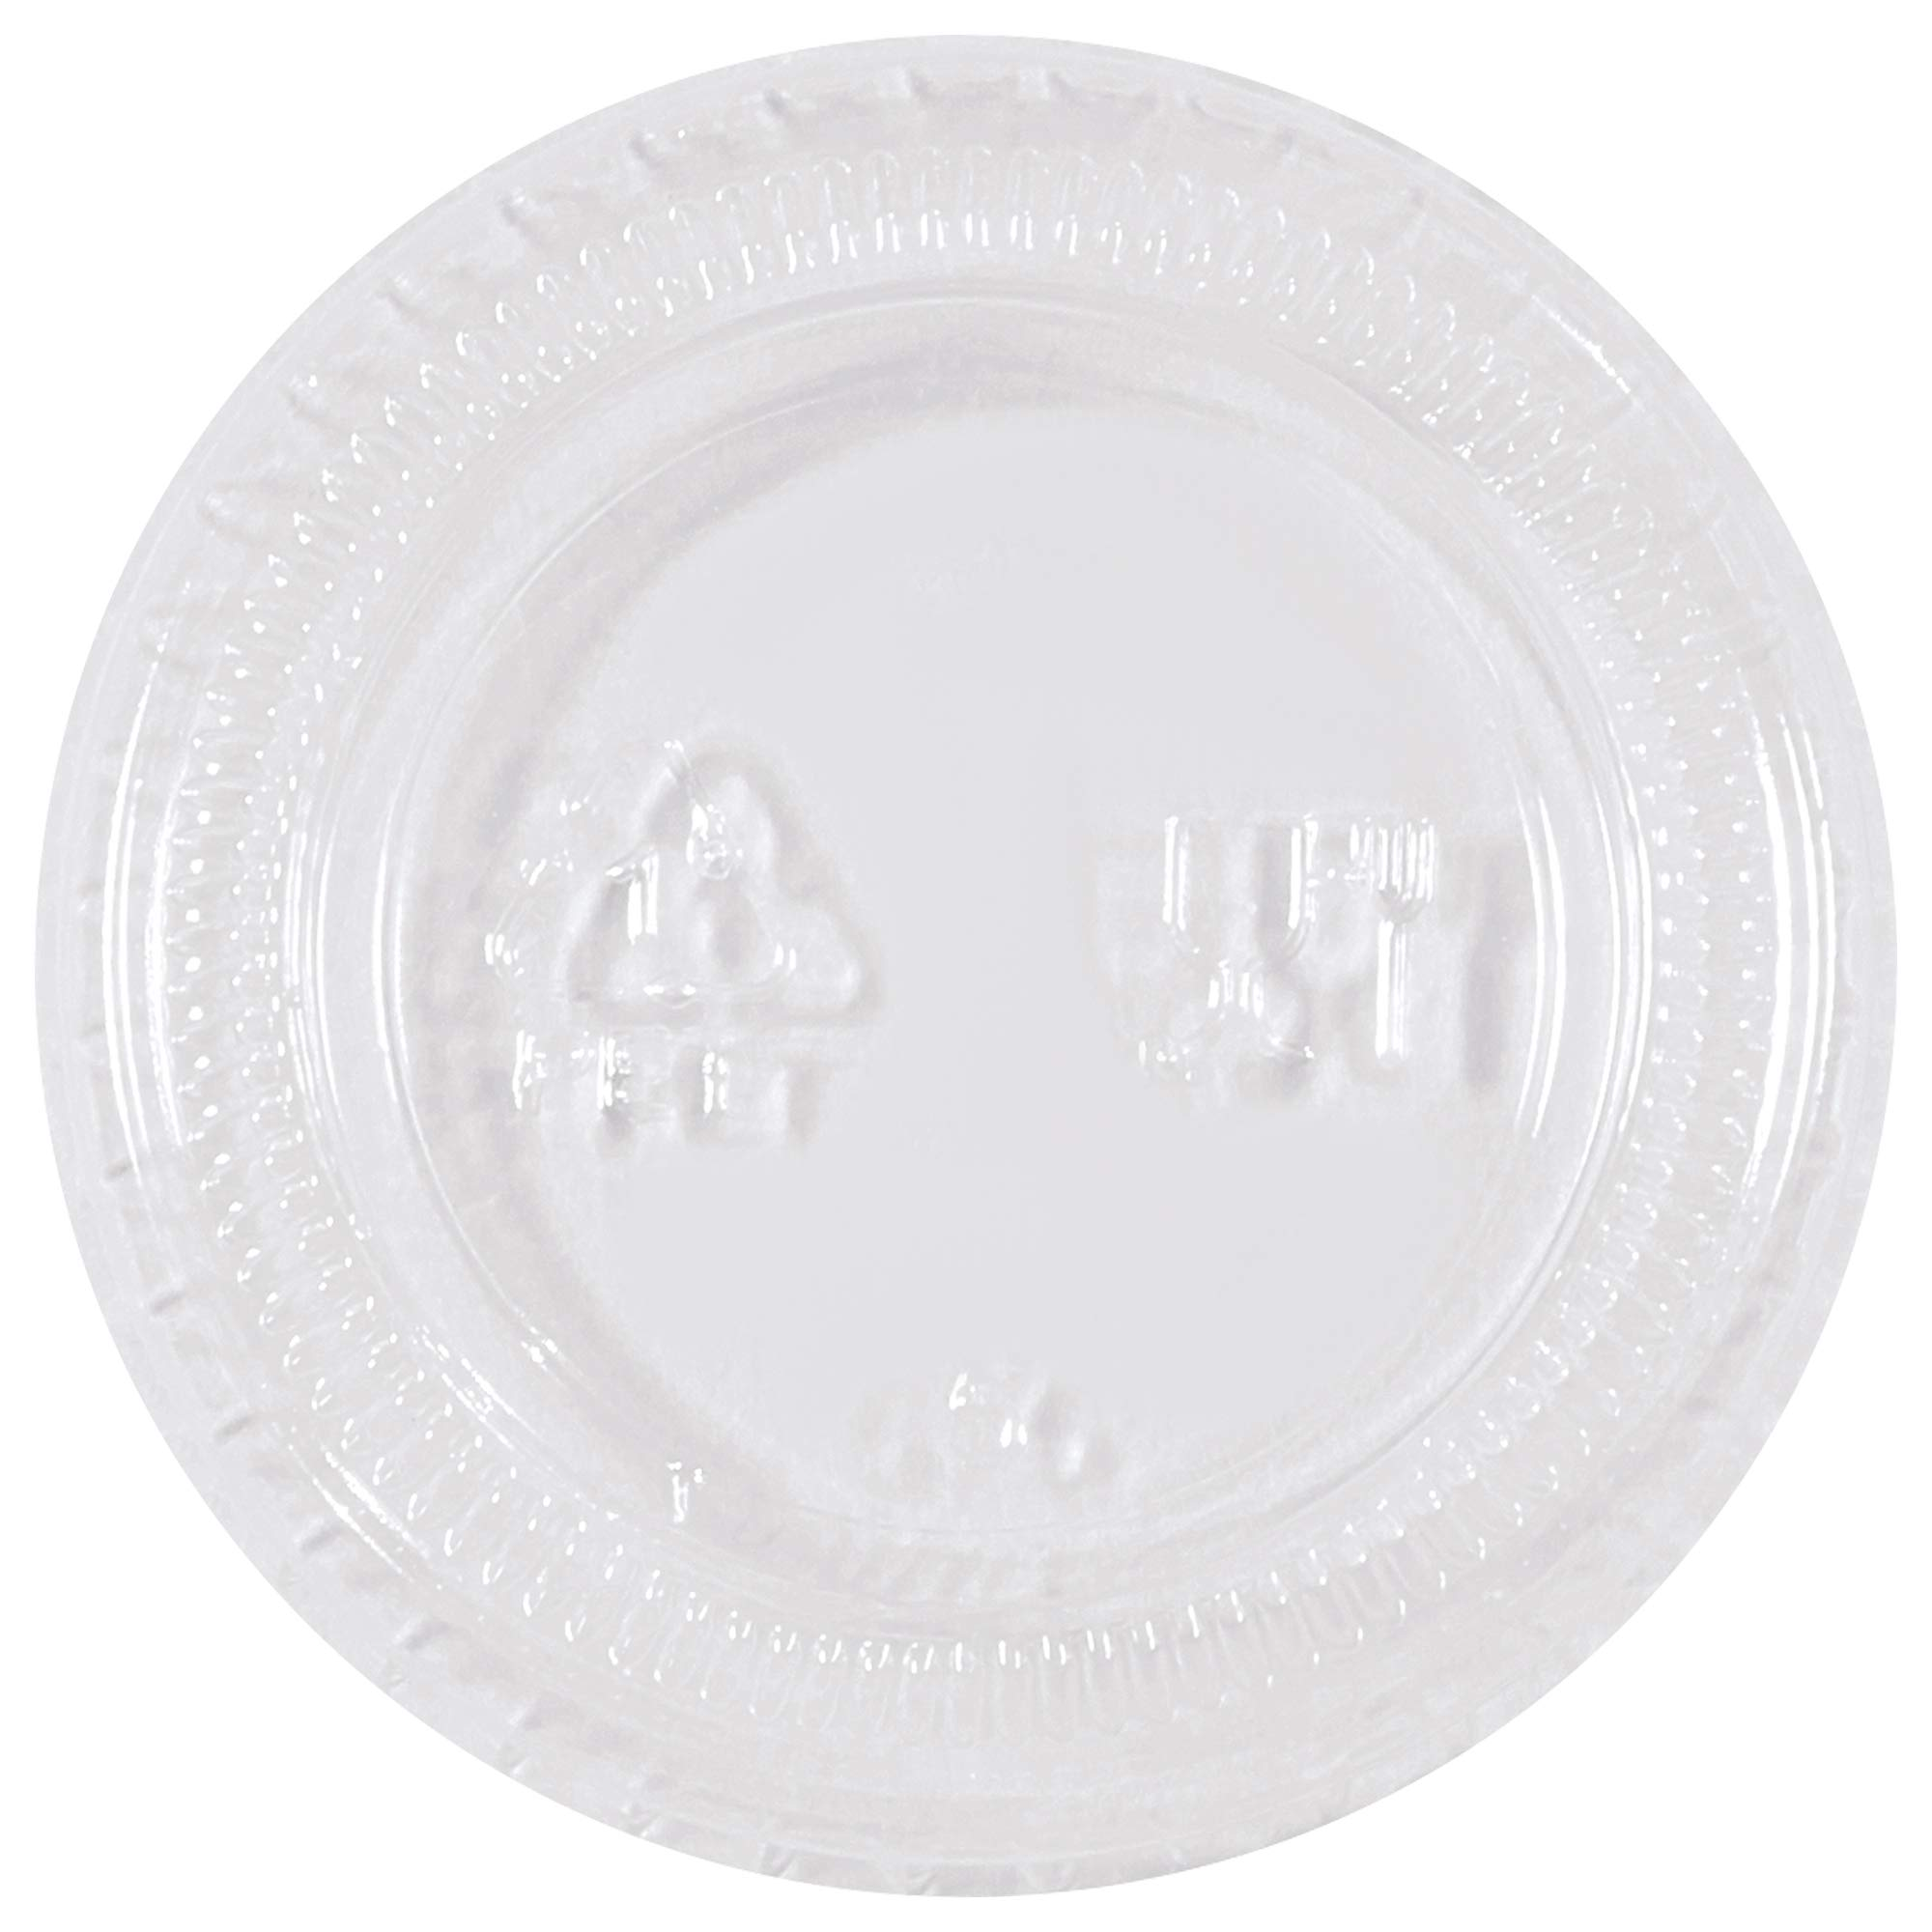 Plastic Portion Cup Lids, 1 oz, Clear, 2500/Case